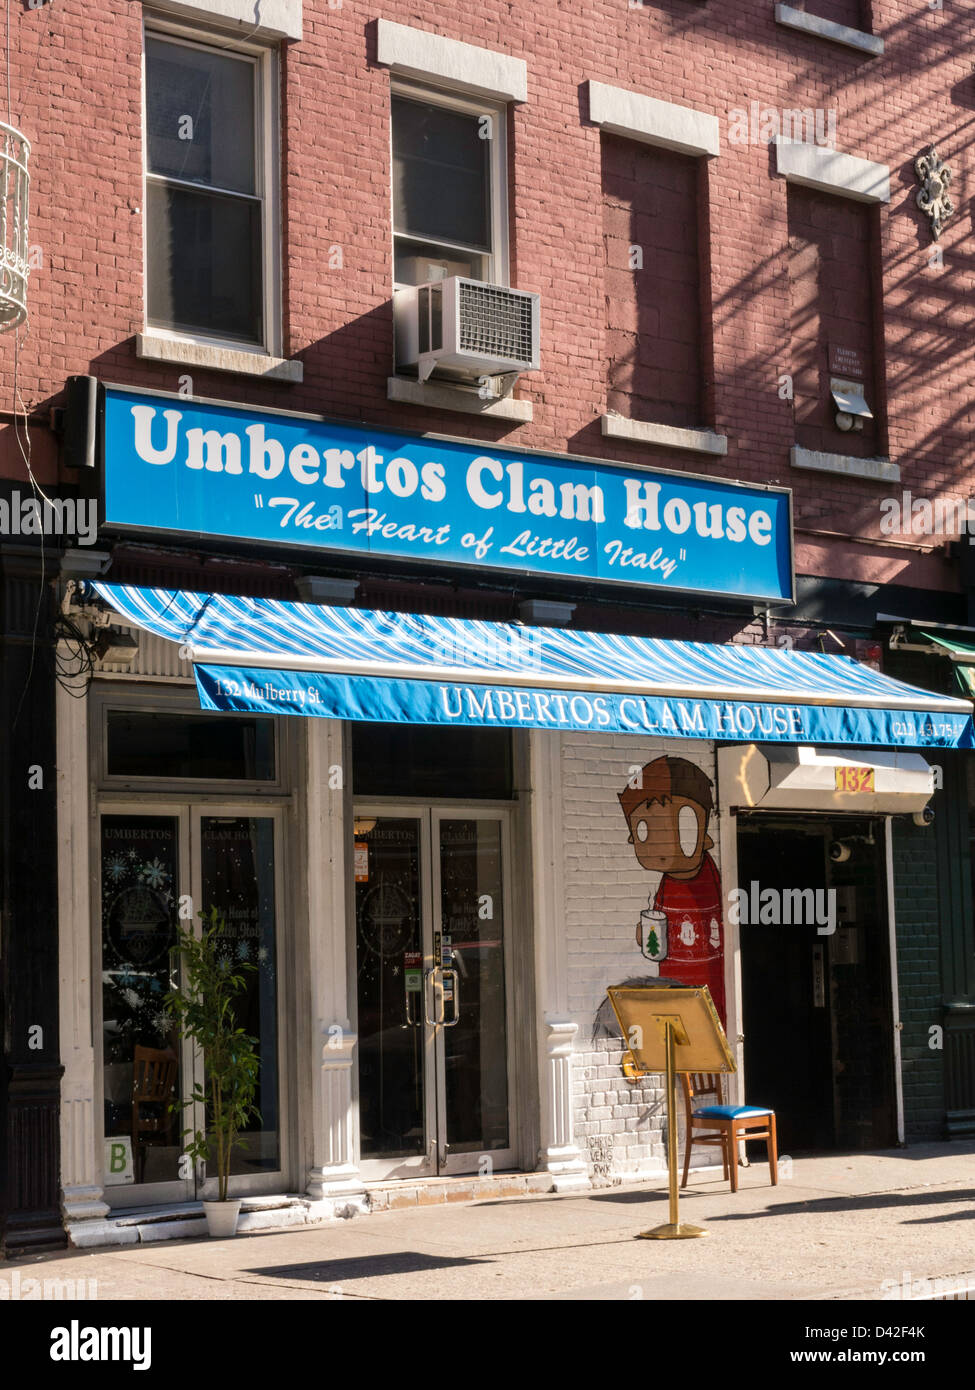 Umbertos Clam House, Mulberry Street, Little Italy, NYC